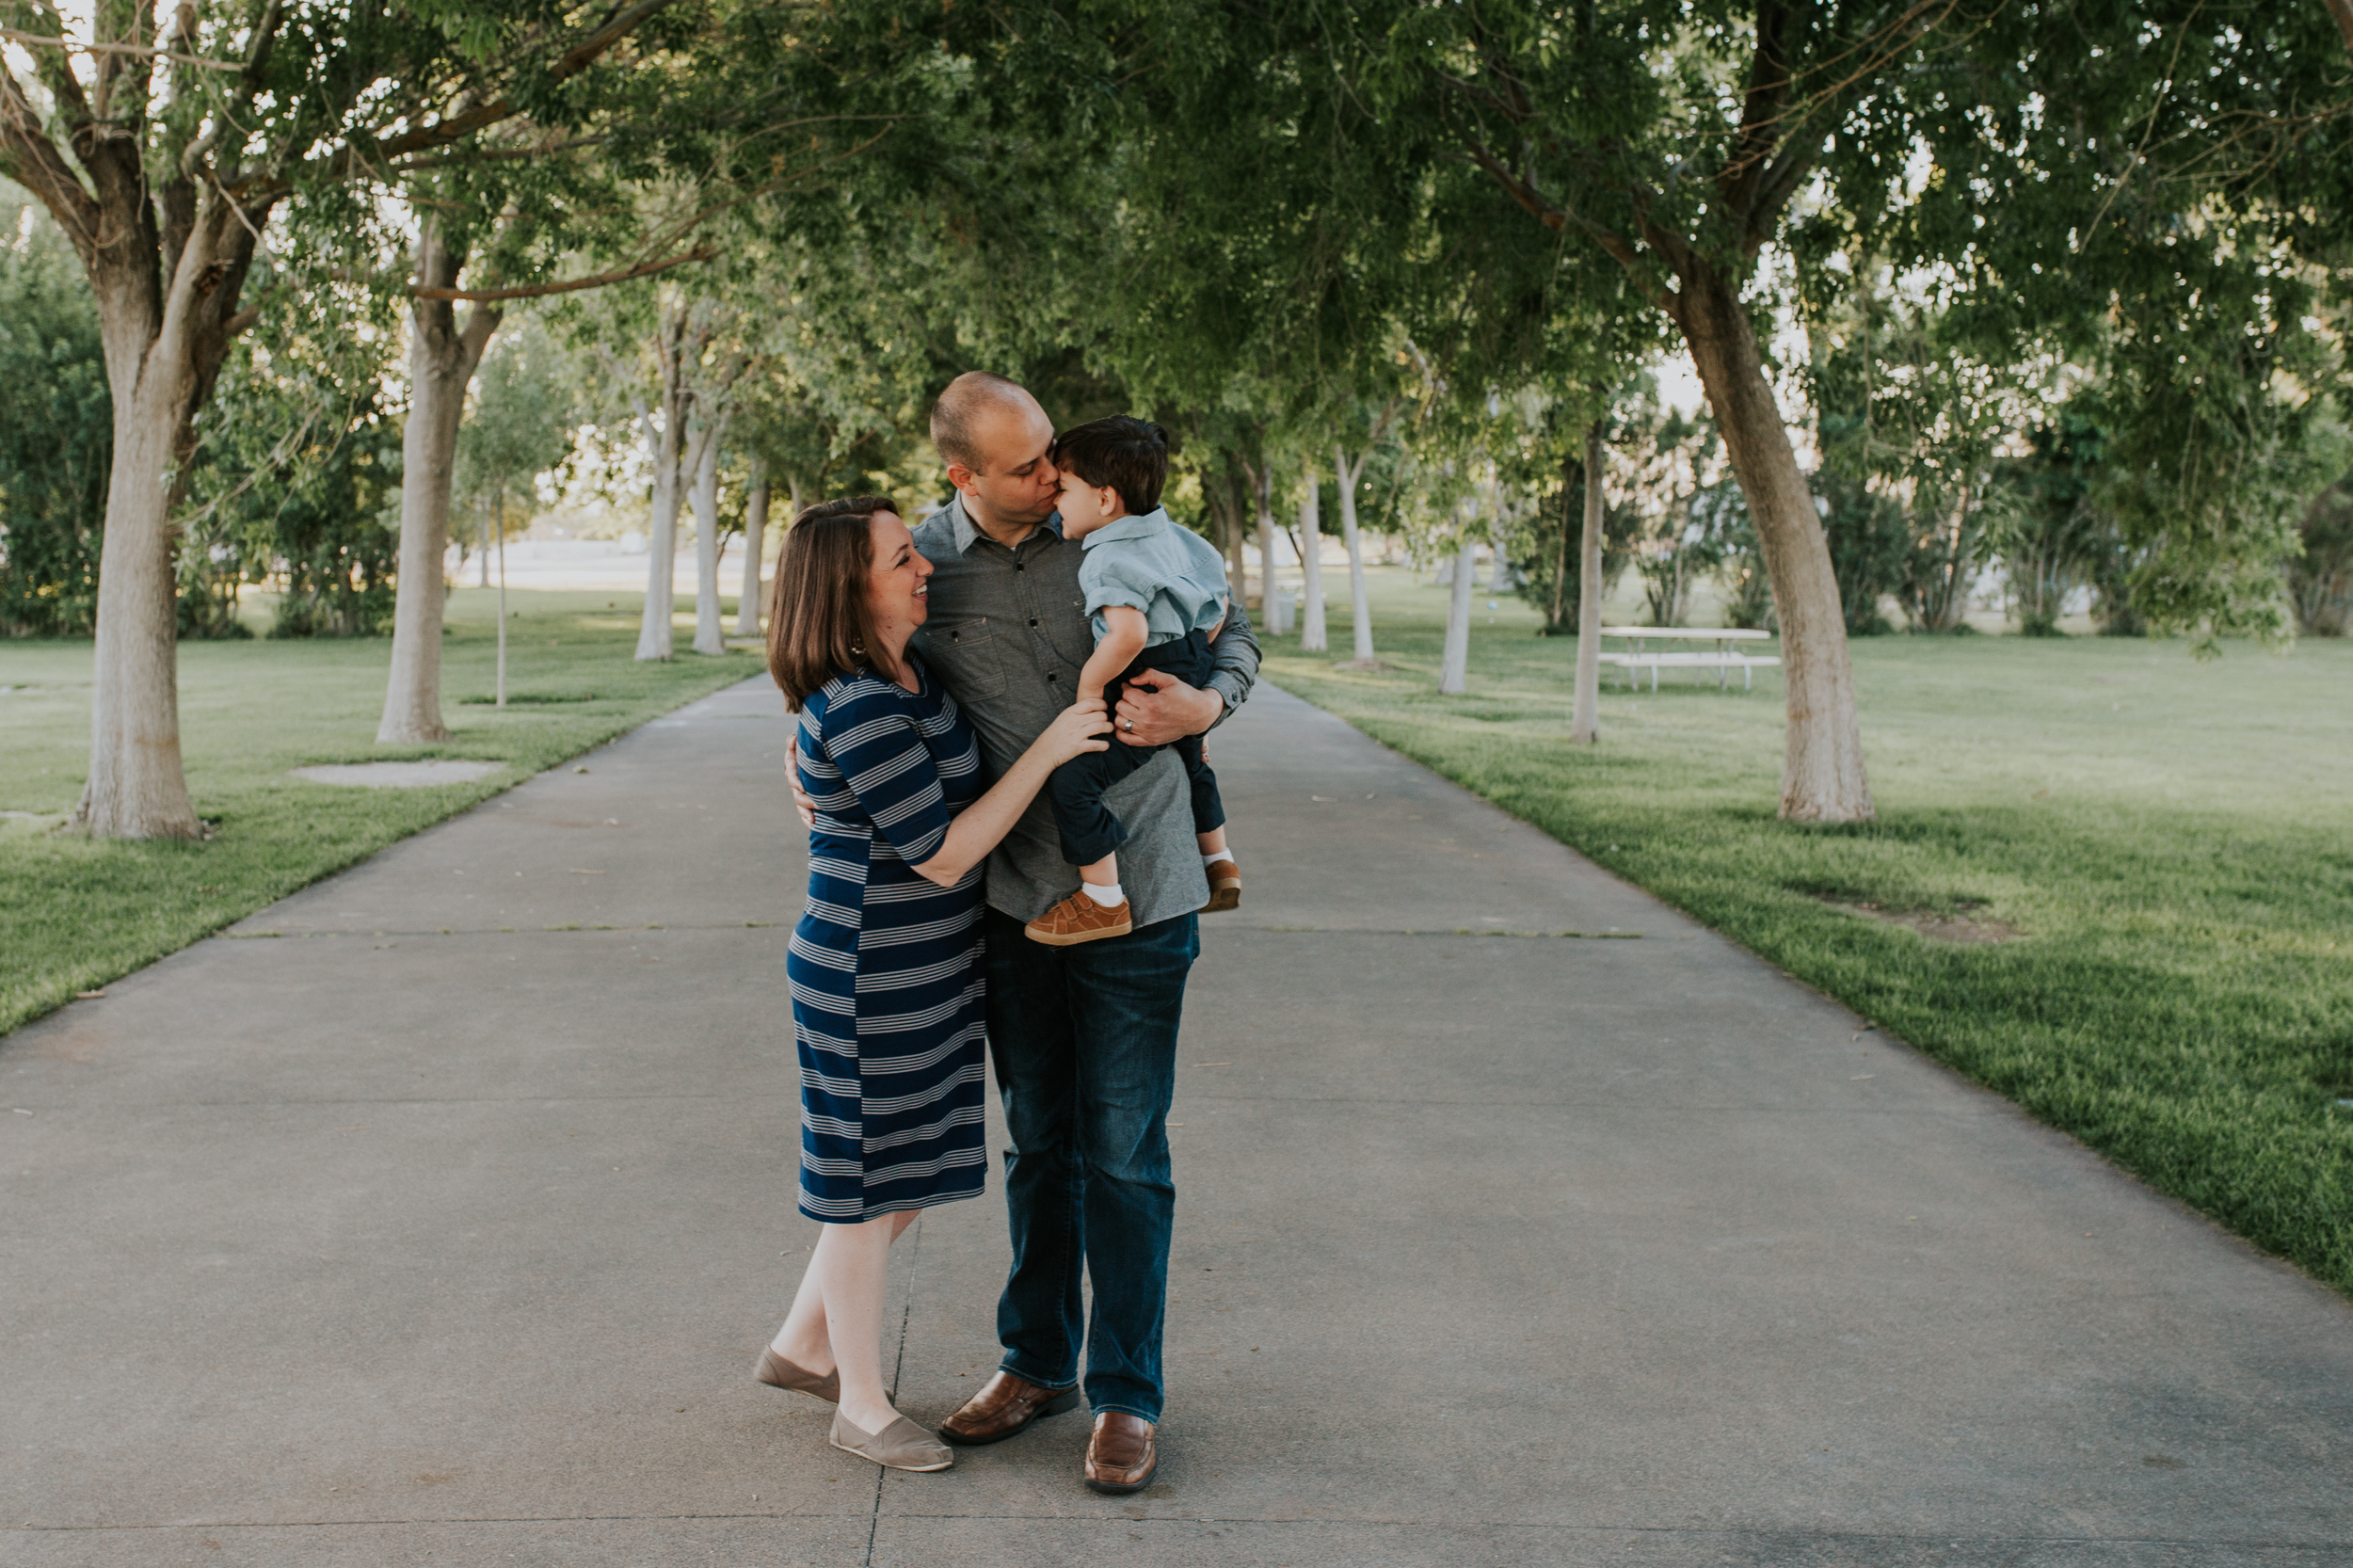 Las Vegas - Family Pictures - Floyd Lamb Park - Kamra Fuller Photography - Lifestyle Family Session - What to wear for family pictures - Extended Family Pictures - Family - Grandparents - Parents - Grandchildren - In Laws - Color Scheme - Navy and Tan